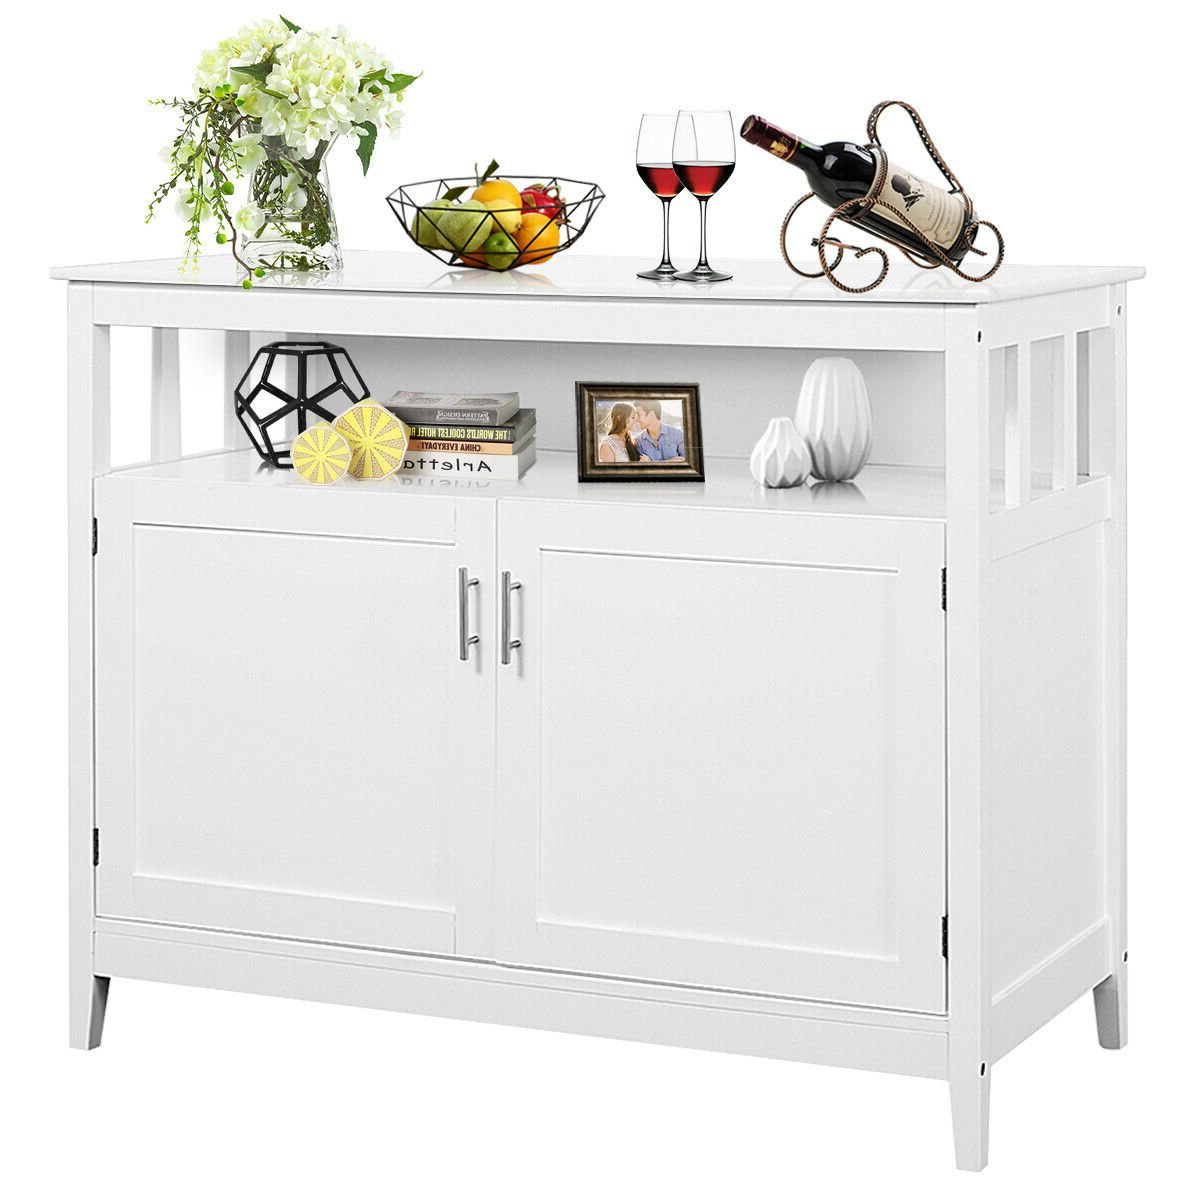 Costway: Costway Modern Kitchen Storage Cabinet Buffet Server Table  Sideboard Dining Wood White | Rakuten For Contemporary Style Wooden Buffets With Two Side Door Storage Cabinets (View 6 of 20)